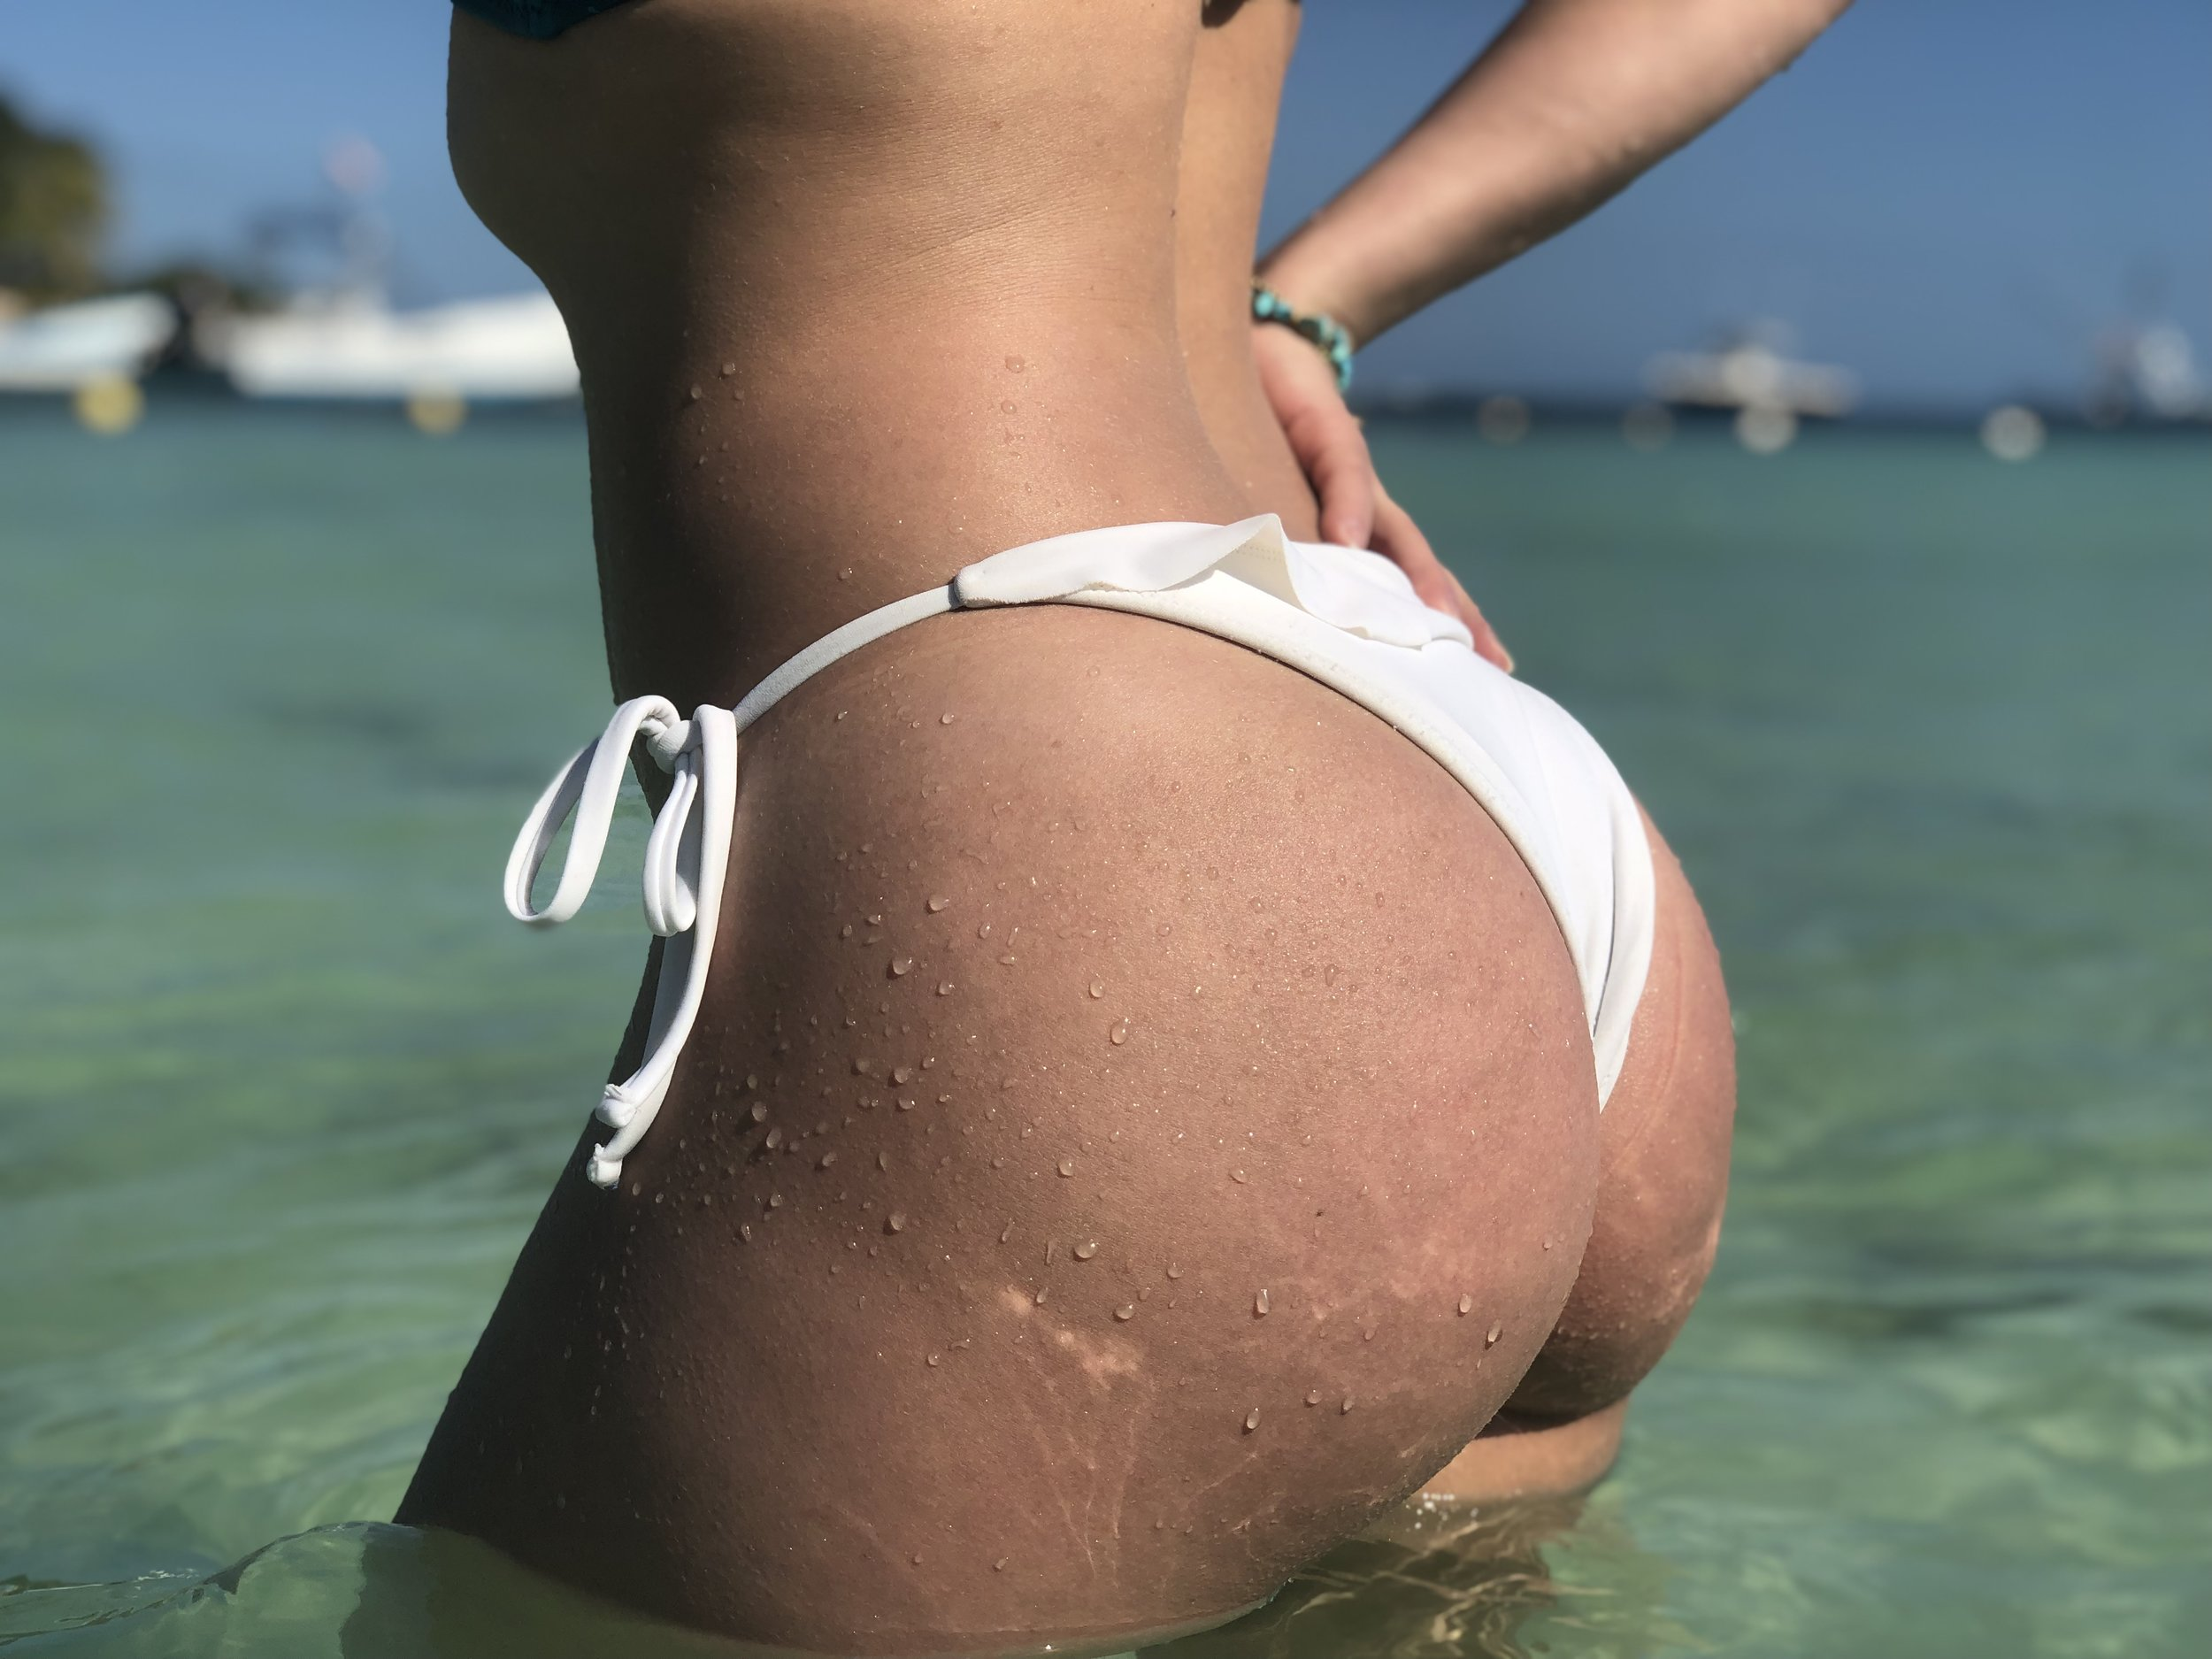 Getting sun on My booty while enjoying the Caribbean water